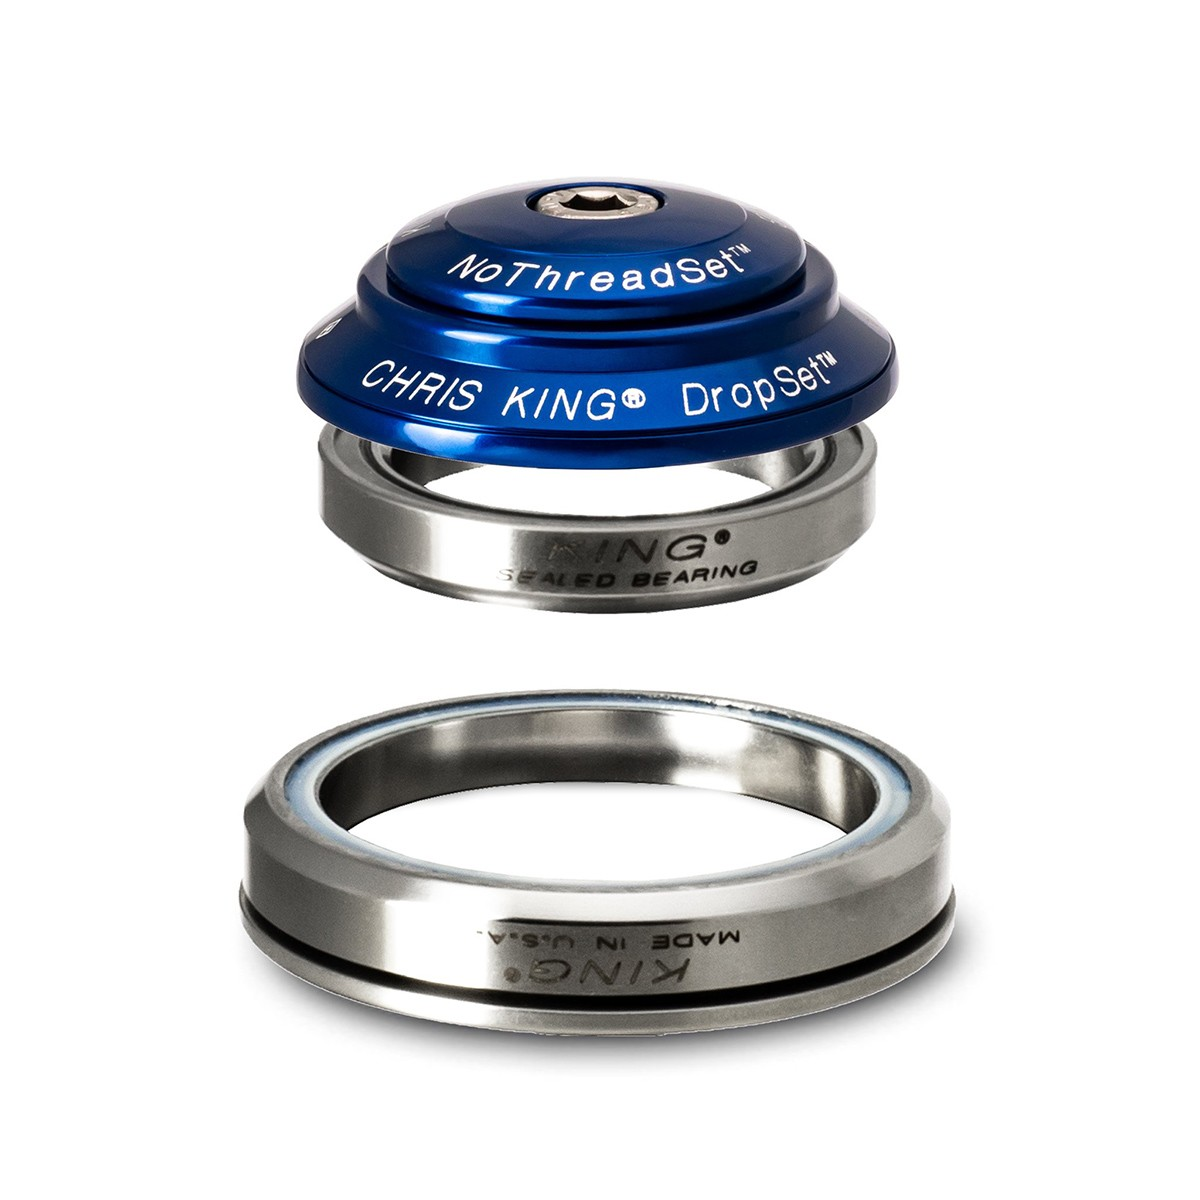 """CHRIS KING DROPSET 2 TAPERED HEADSETS 1- 1/8"""" - 1.5"""""""